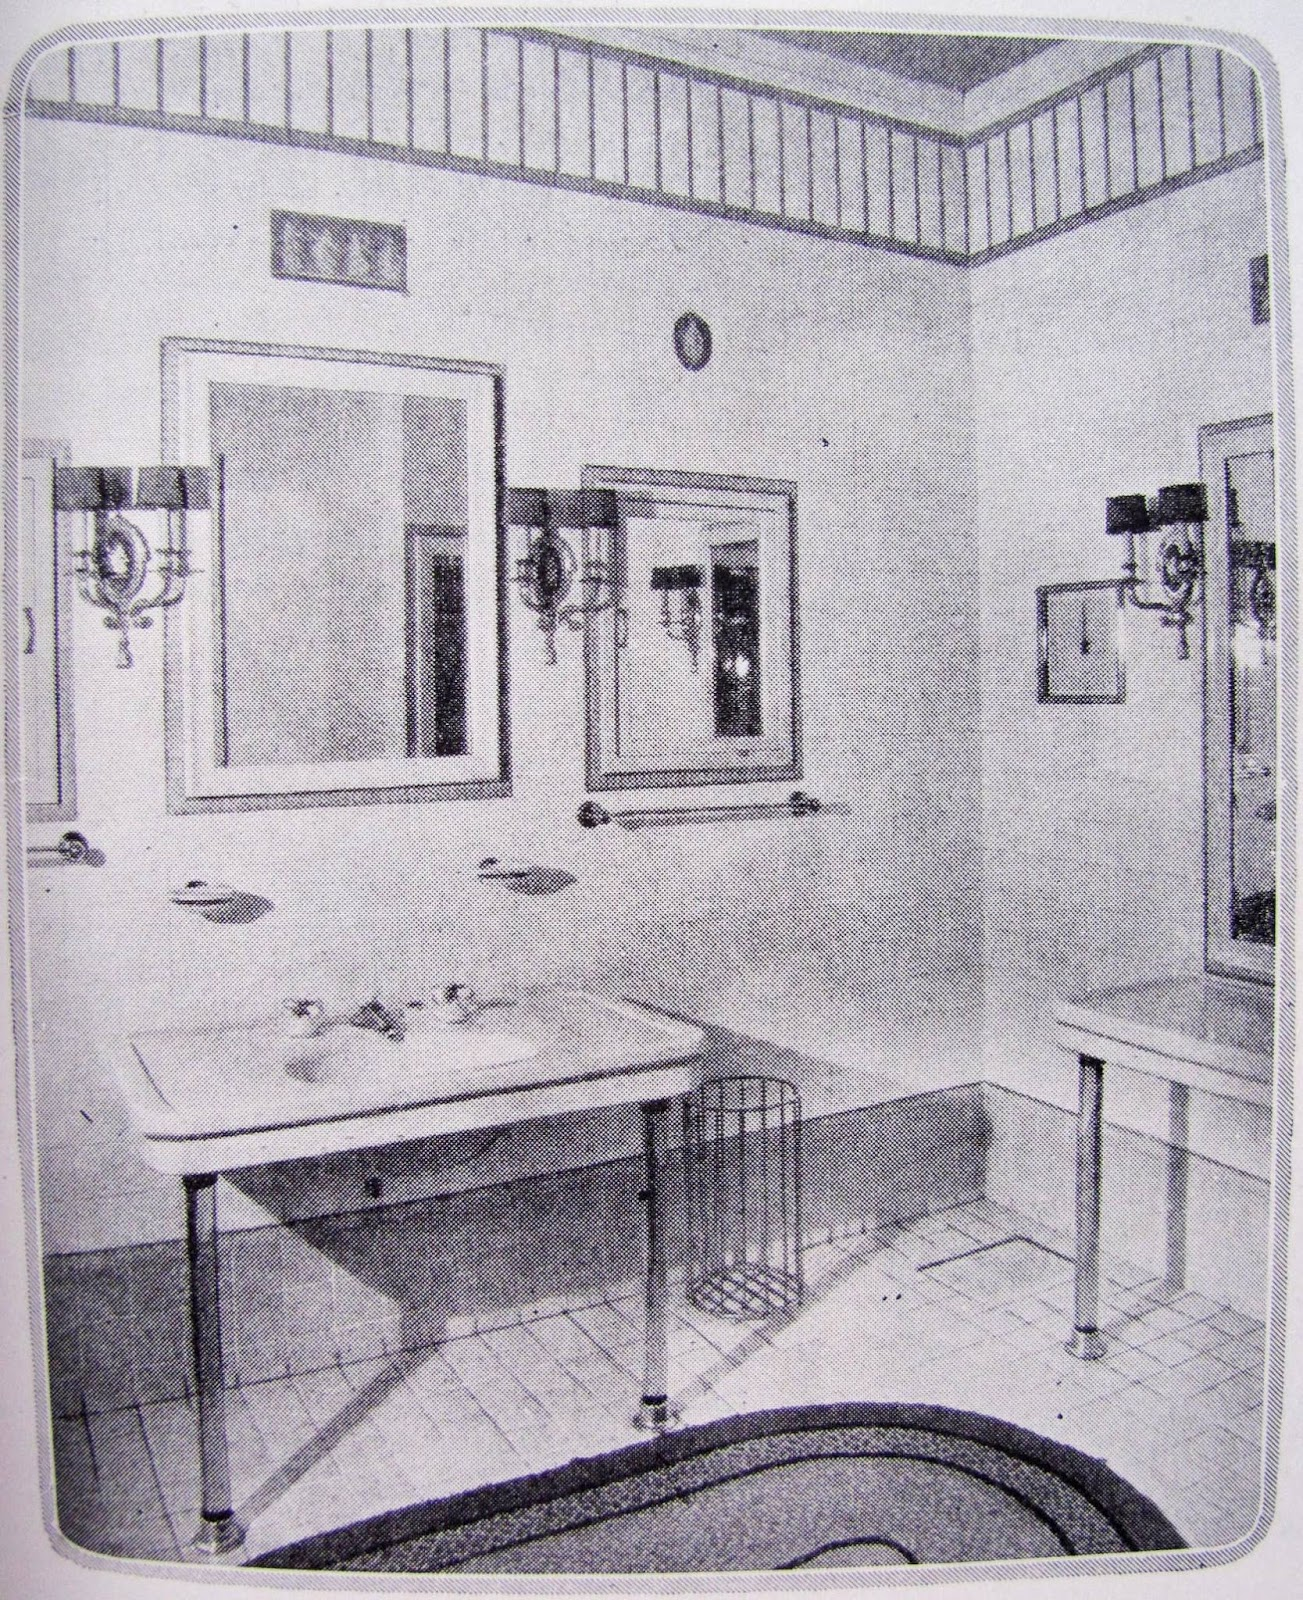 Studio garden bungalow 1920s vintage bathroom styles for 1920s bathroom remodel ideas